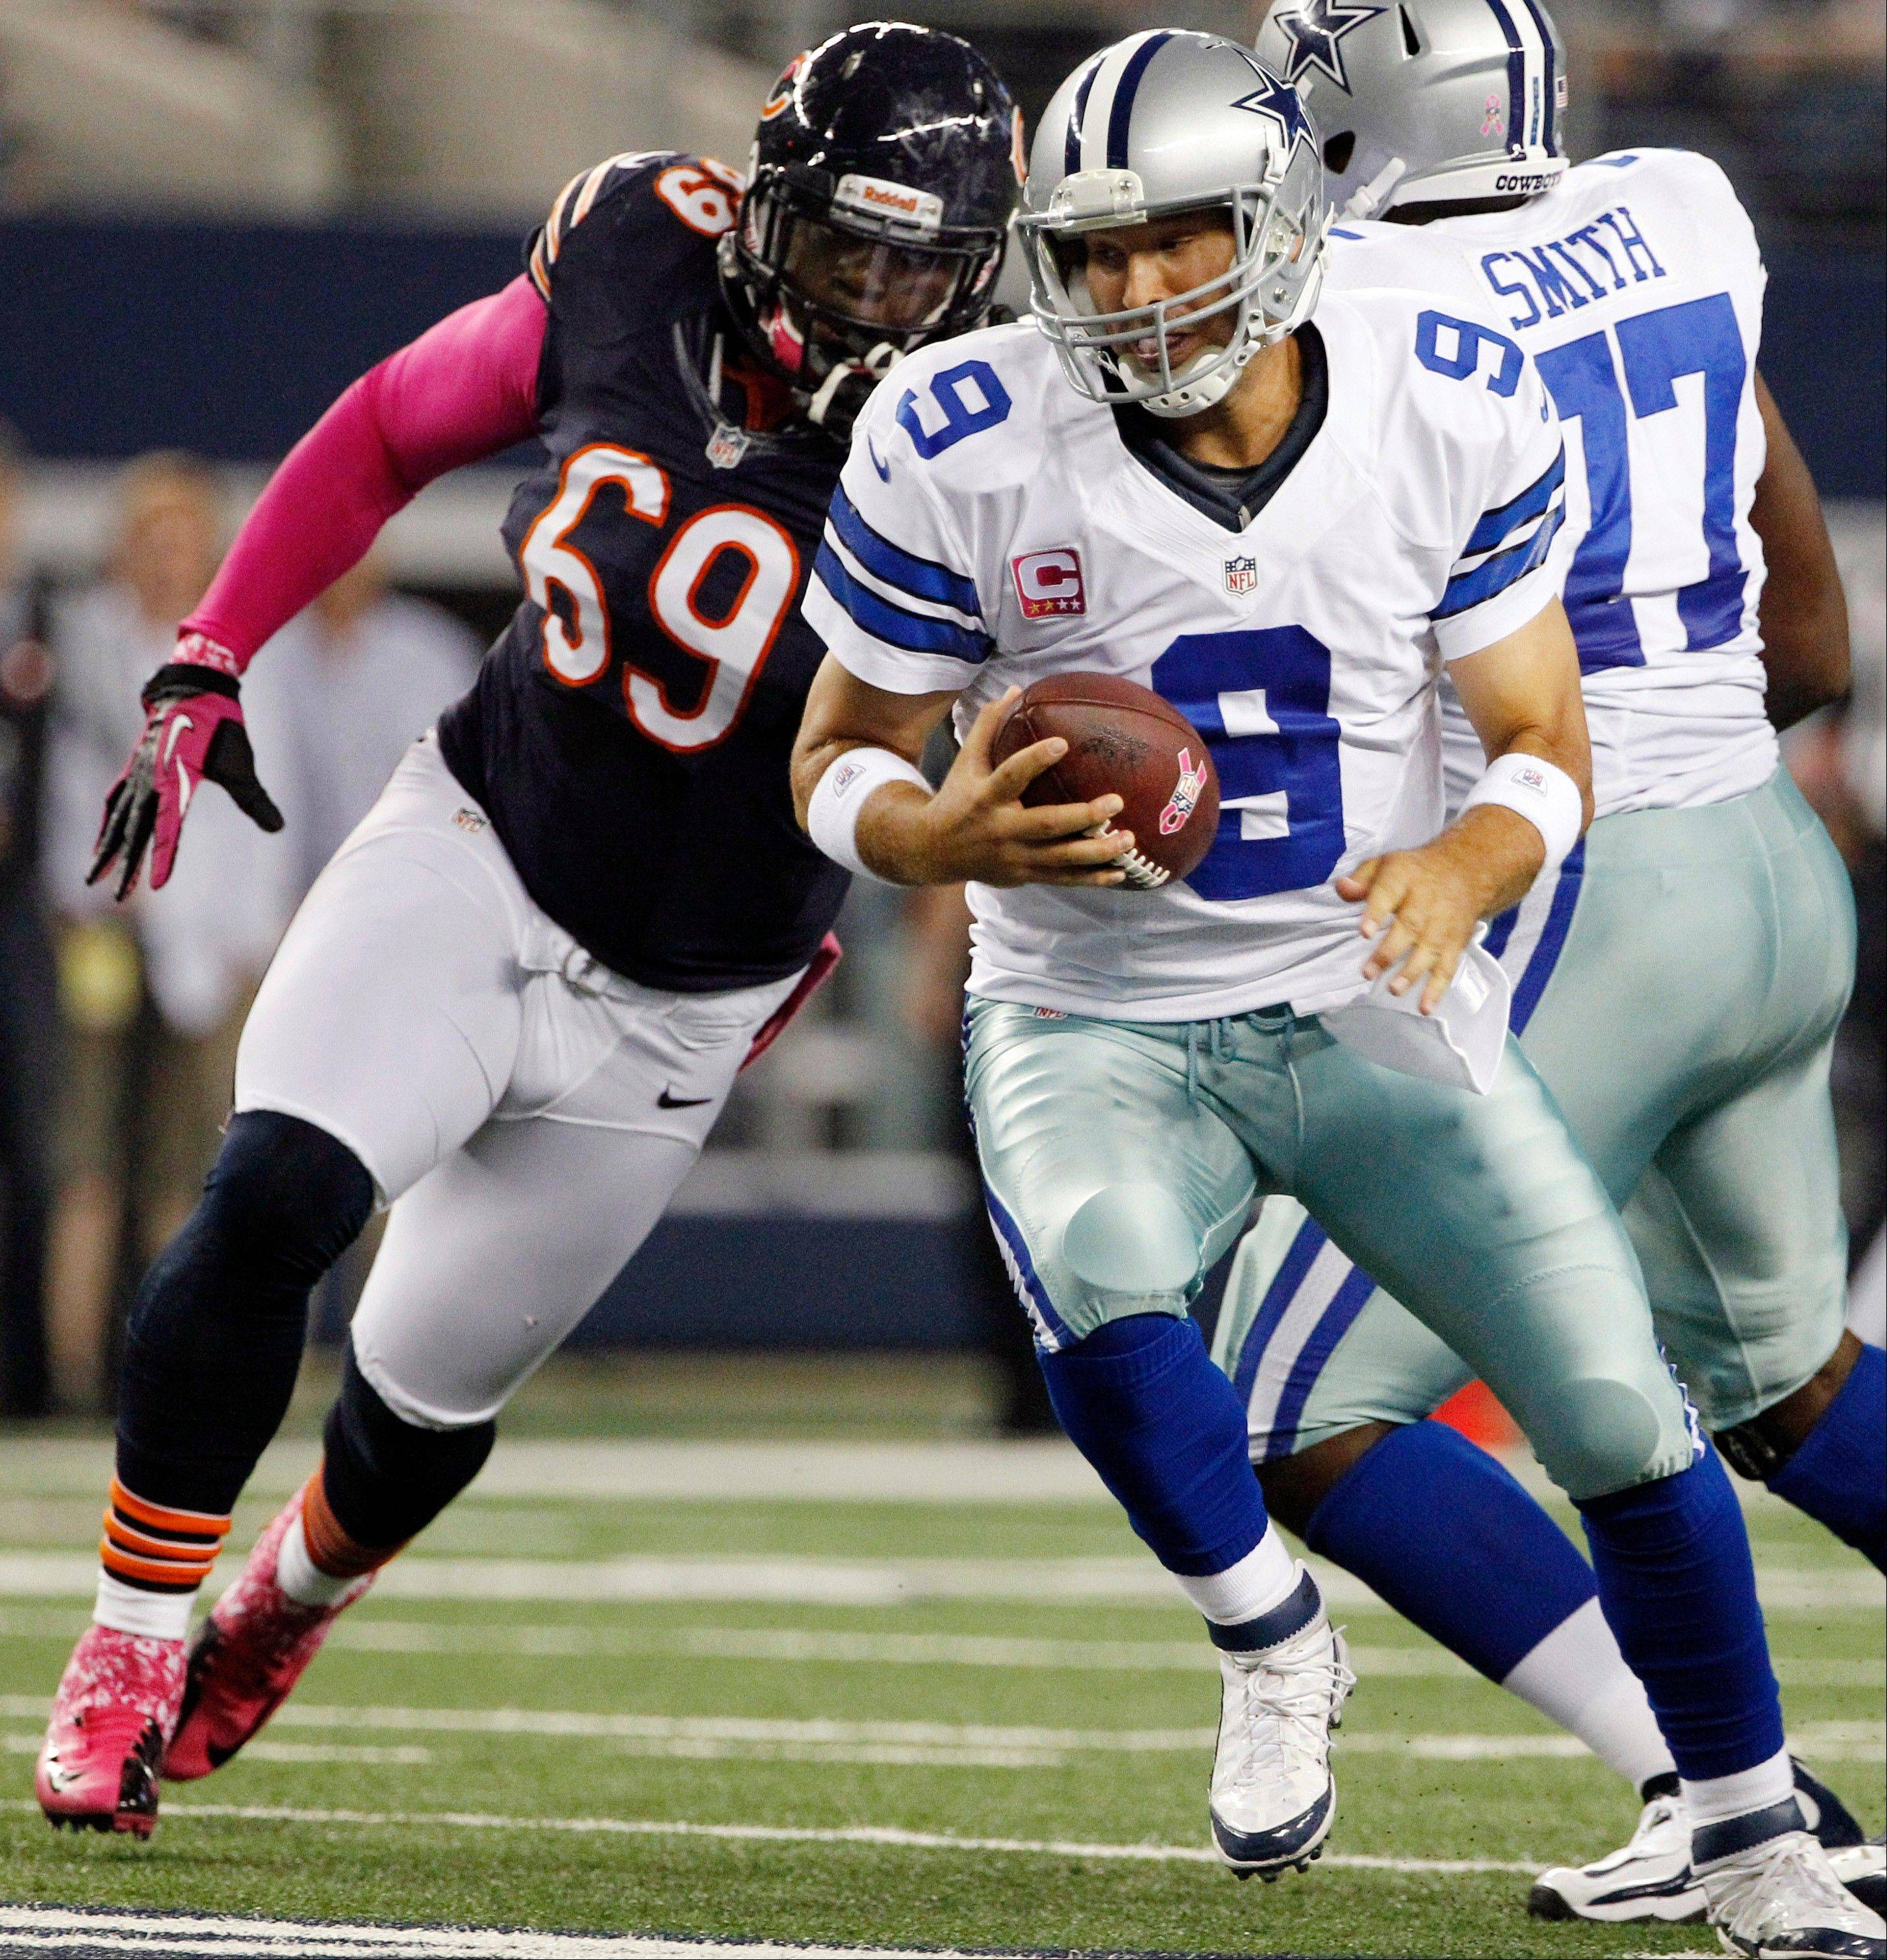 Chicago Bears defensive tackle Henry Melton (69) moves in to sack Dallas Cowboys quarterback Tony Romo (9) during the first half Monday night in Arlington, Texas.